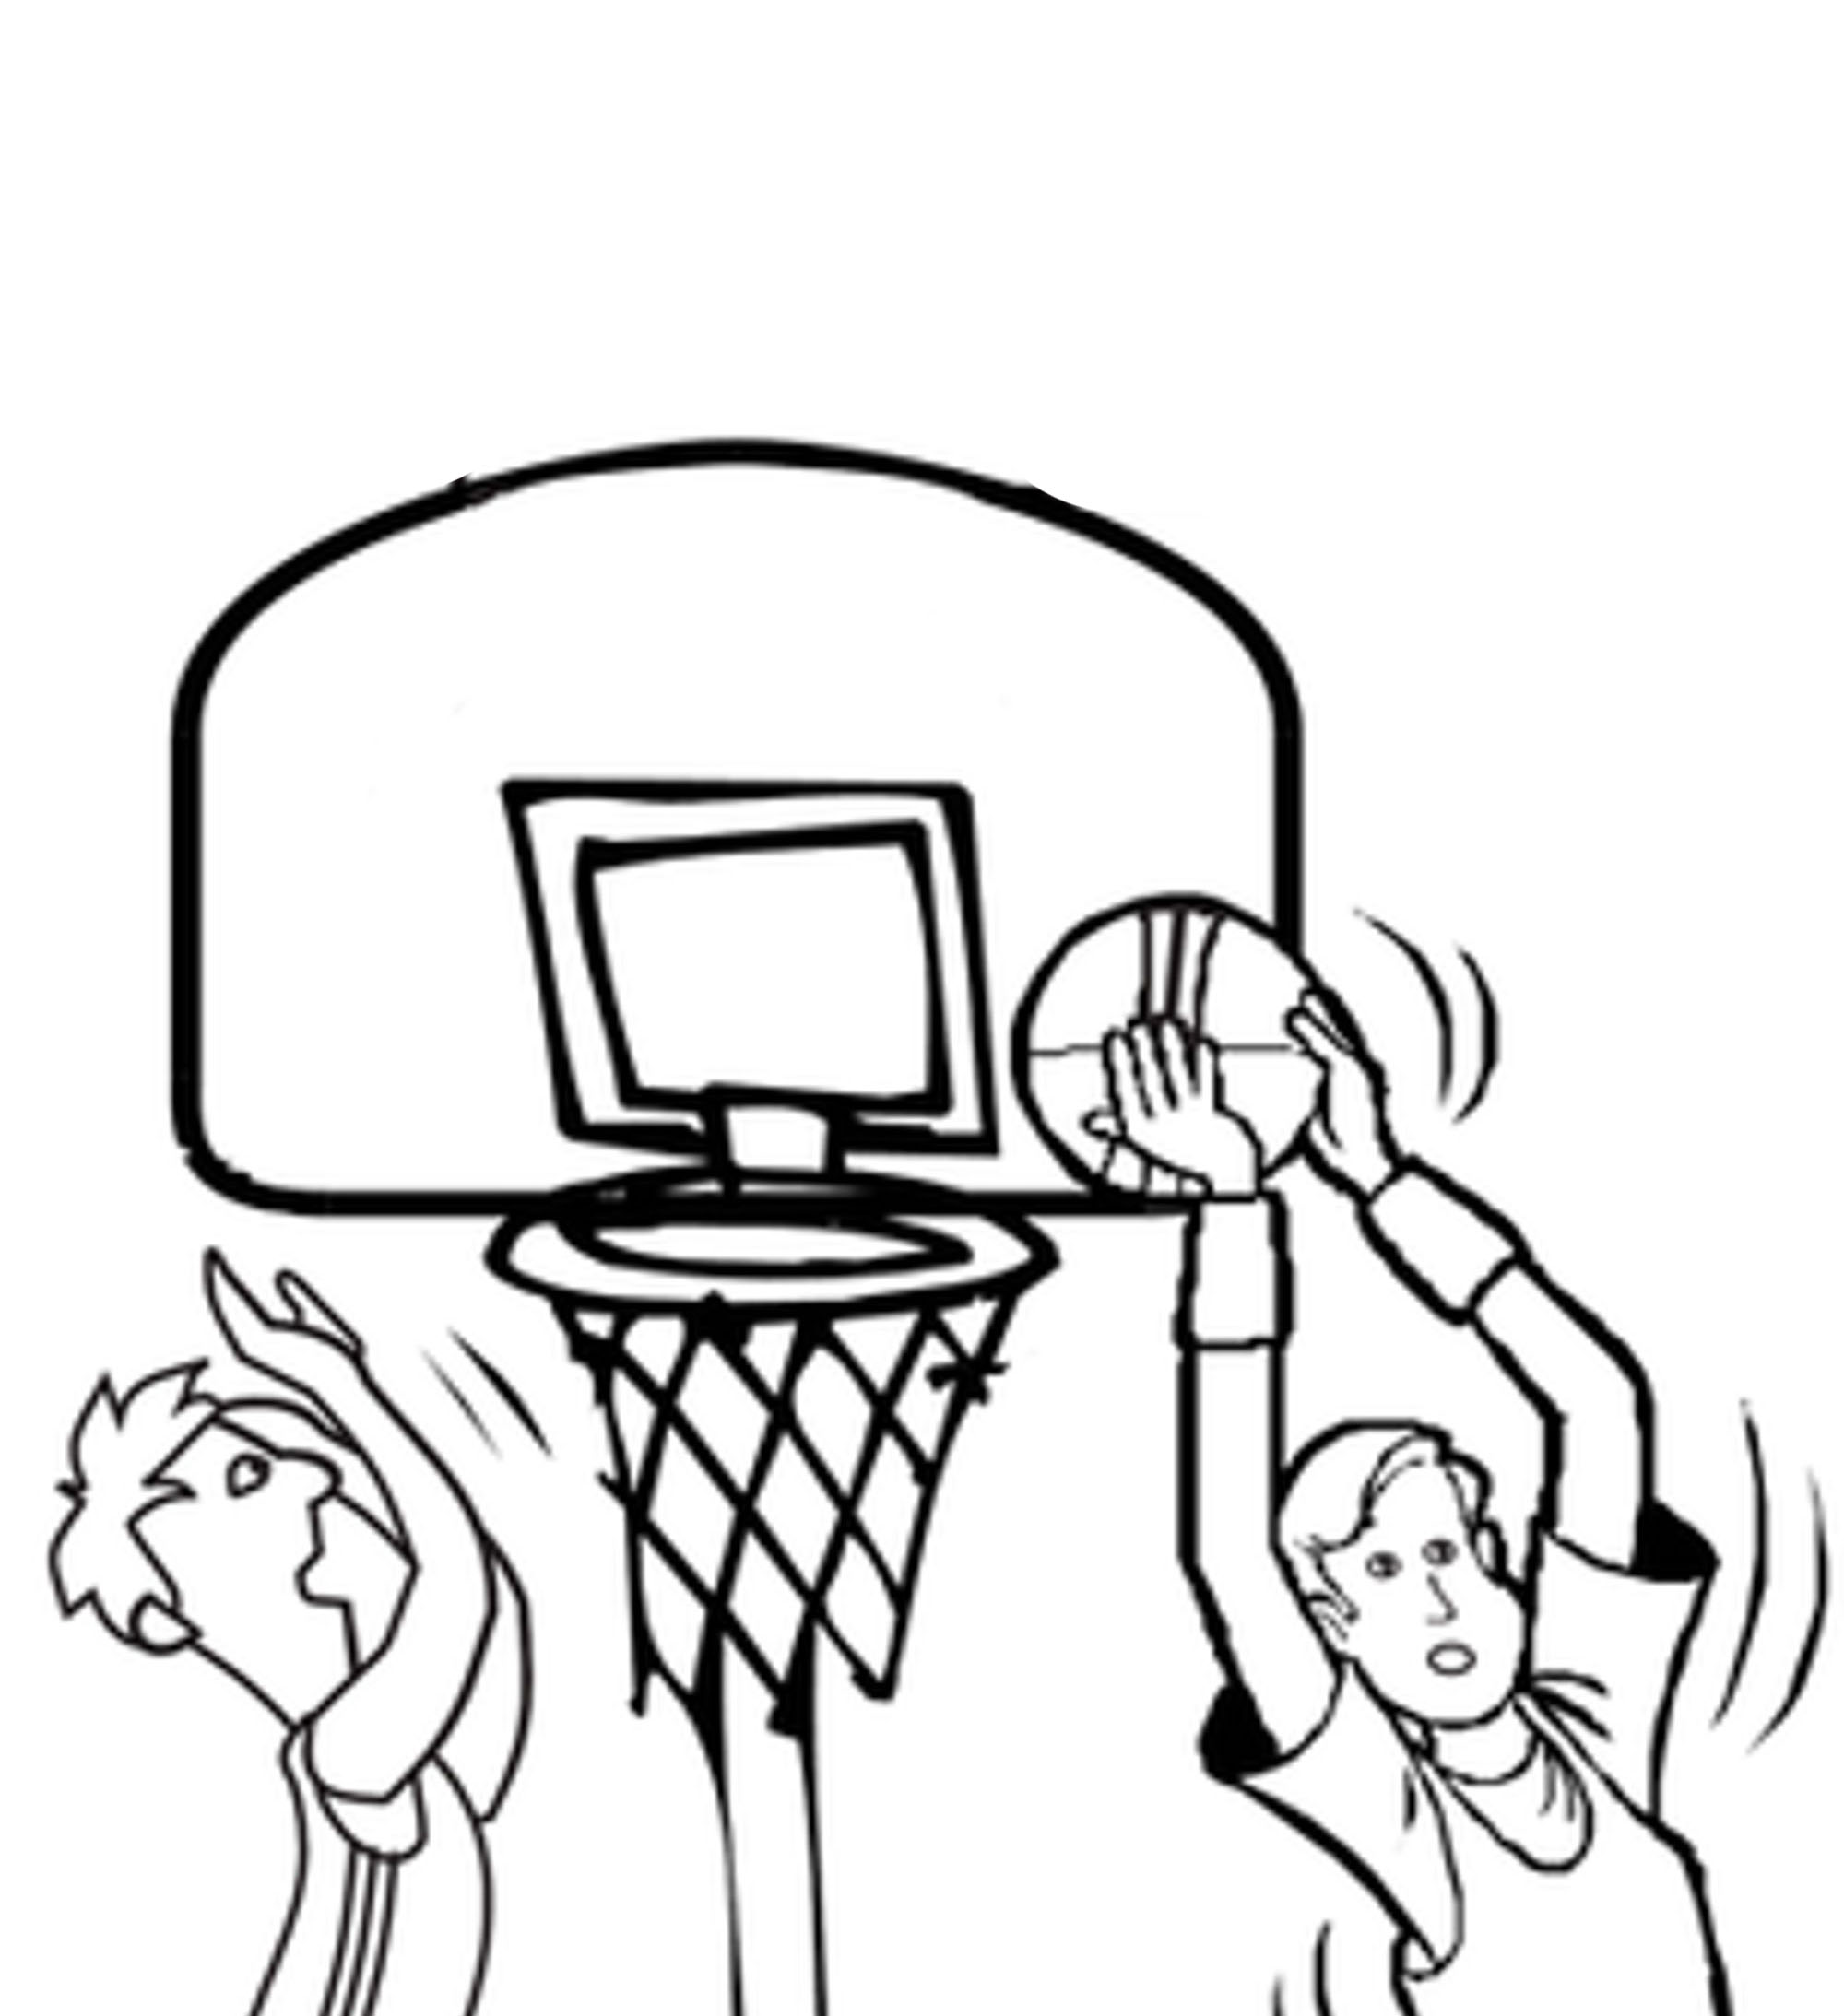 2000x2187 Advice Basketball Hoop Coloring Page Pages Education